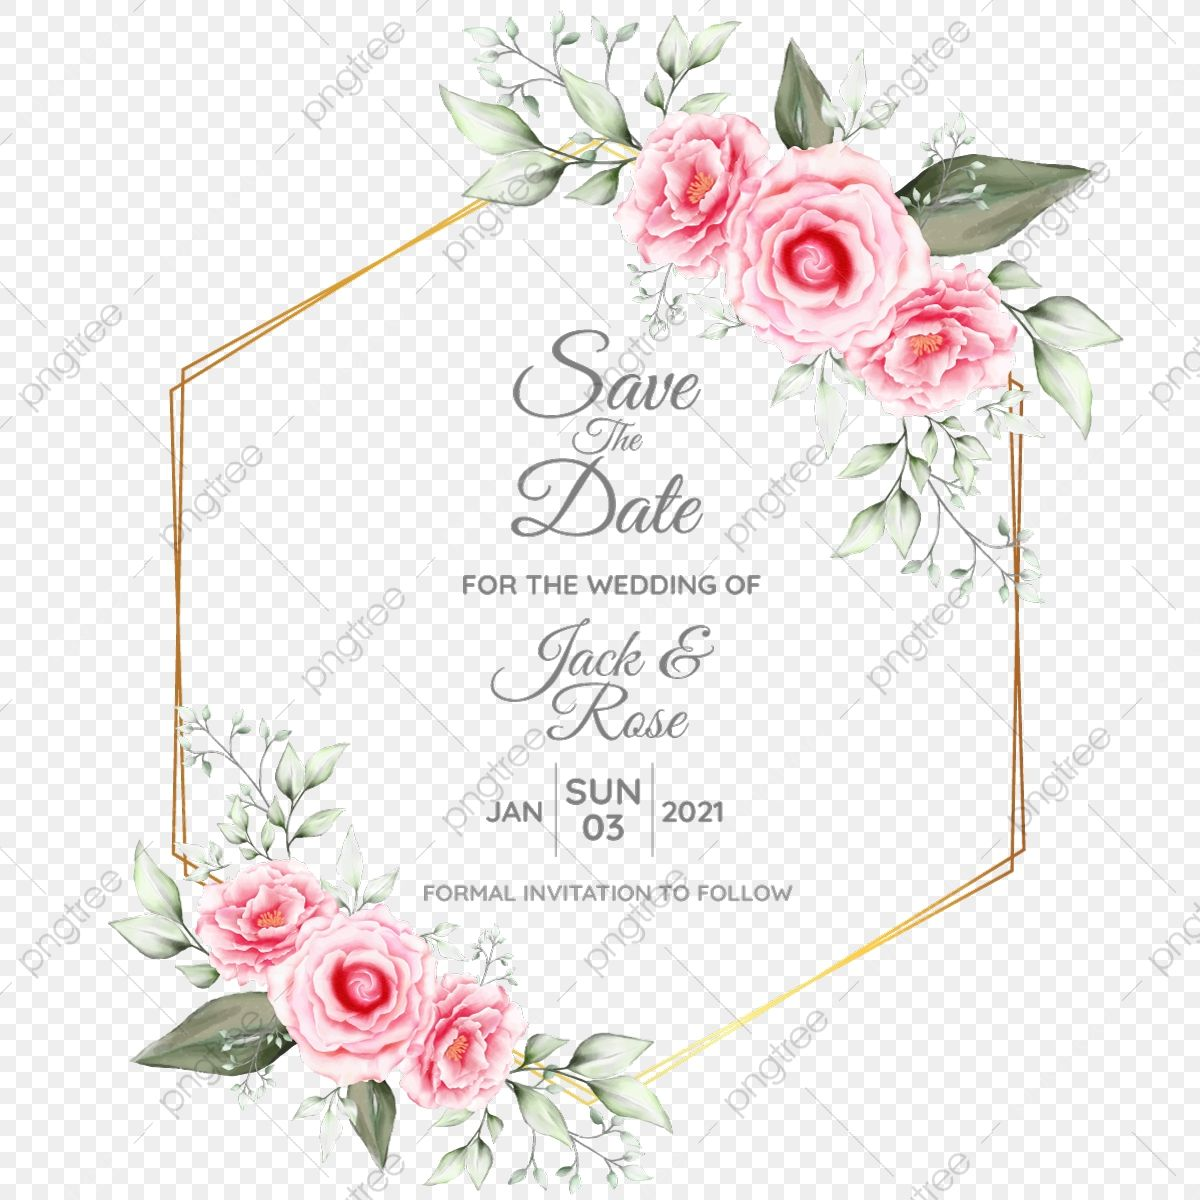 Watercolor Floral Cards Template With Geometric Golden Drawing Flower And Save The Date Multipurpose Floral Inv Floral Watercolor Floral Cards Flower Drawing